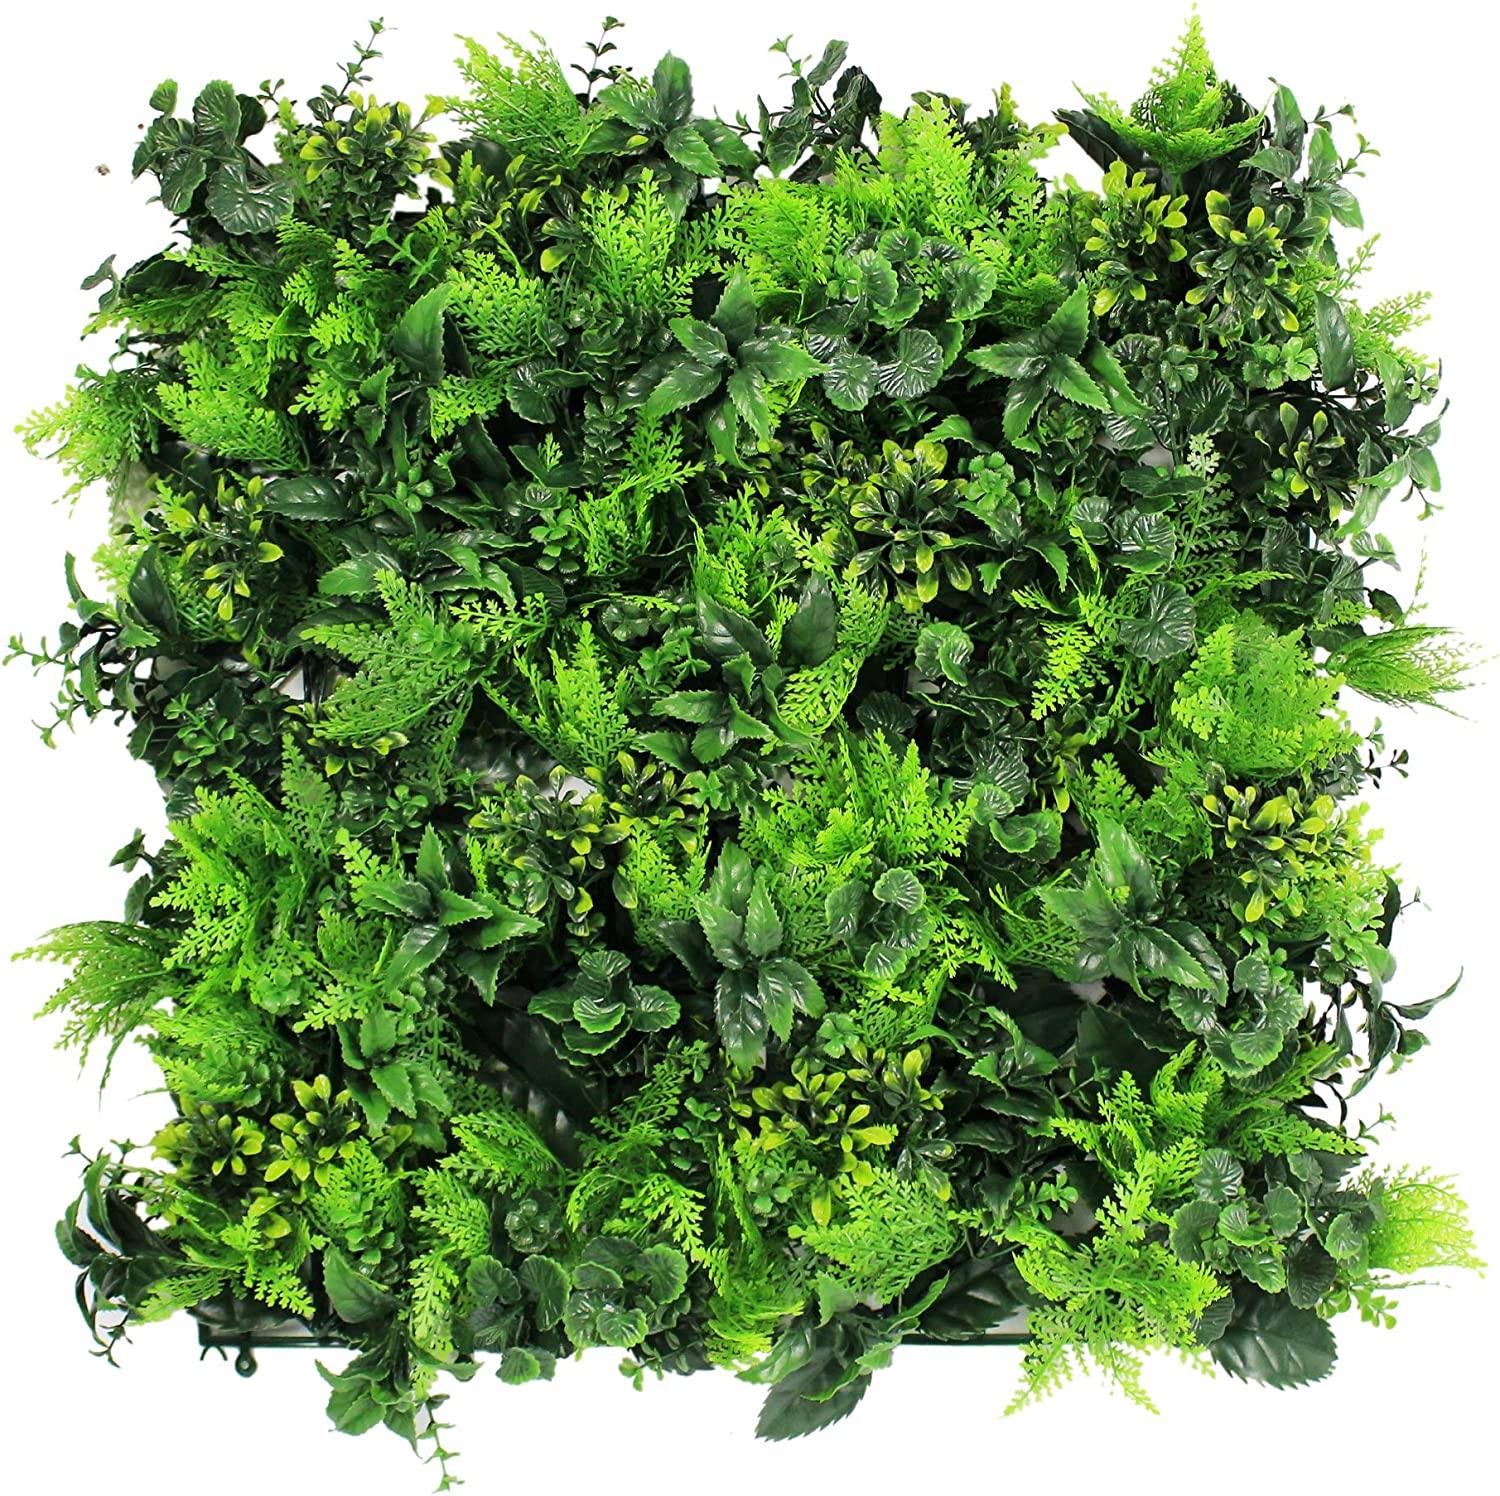 ULAND Artificial Topiary Hedges Panels Shrubs Faux Fenc Super beauty product restock quality top! Plastic Popular product